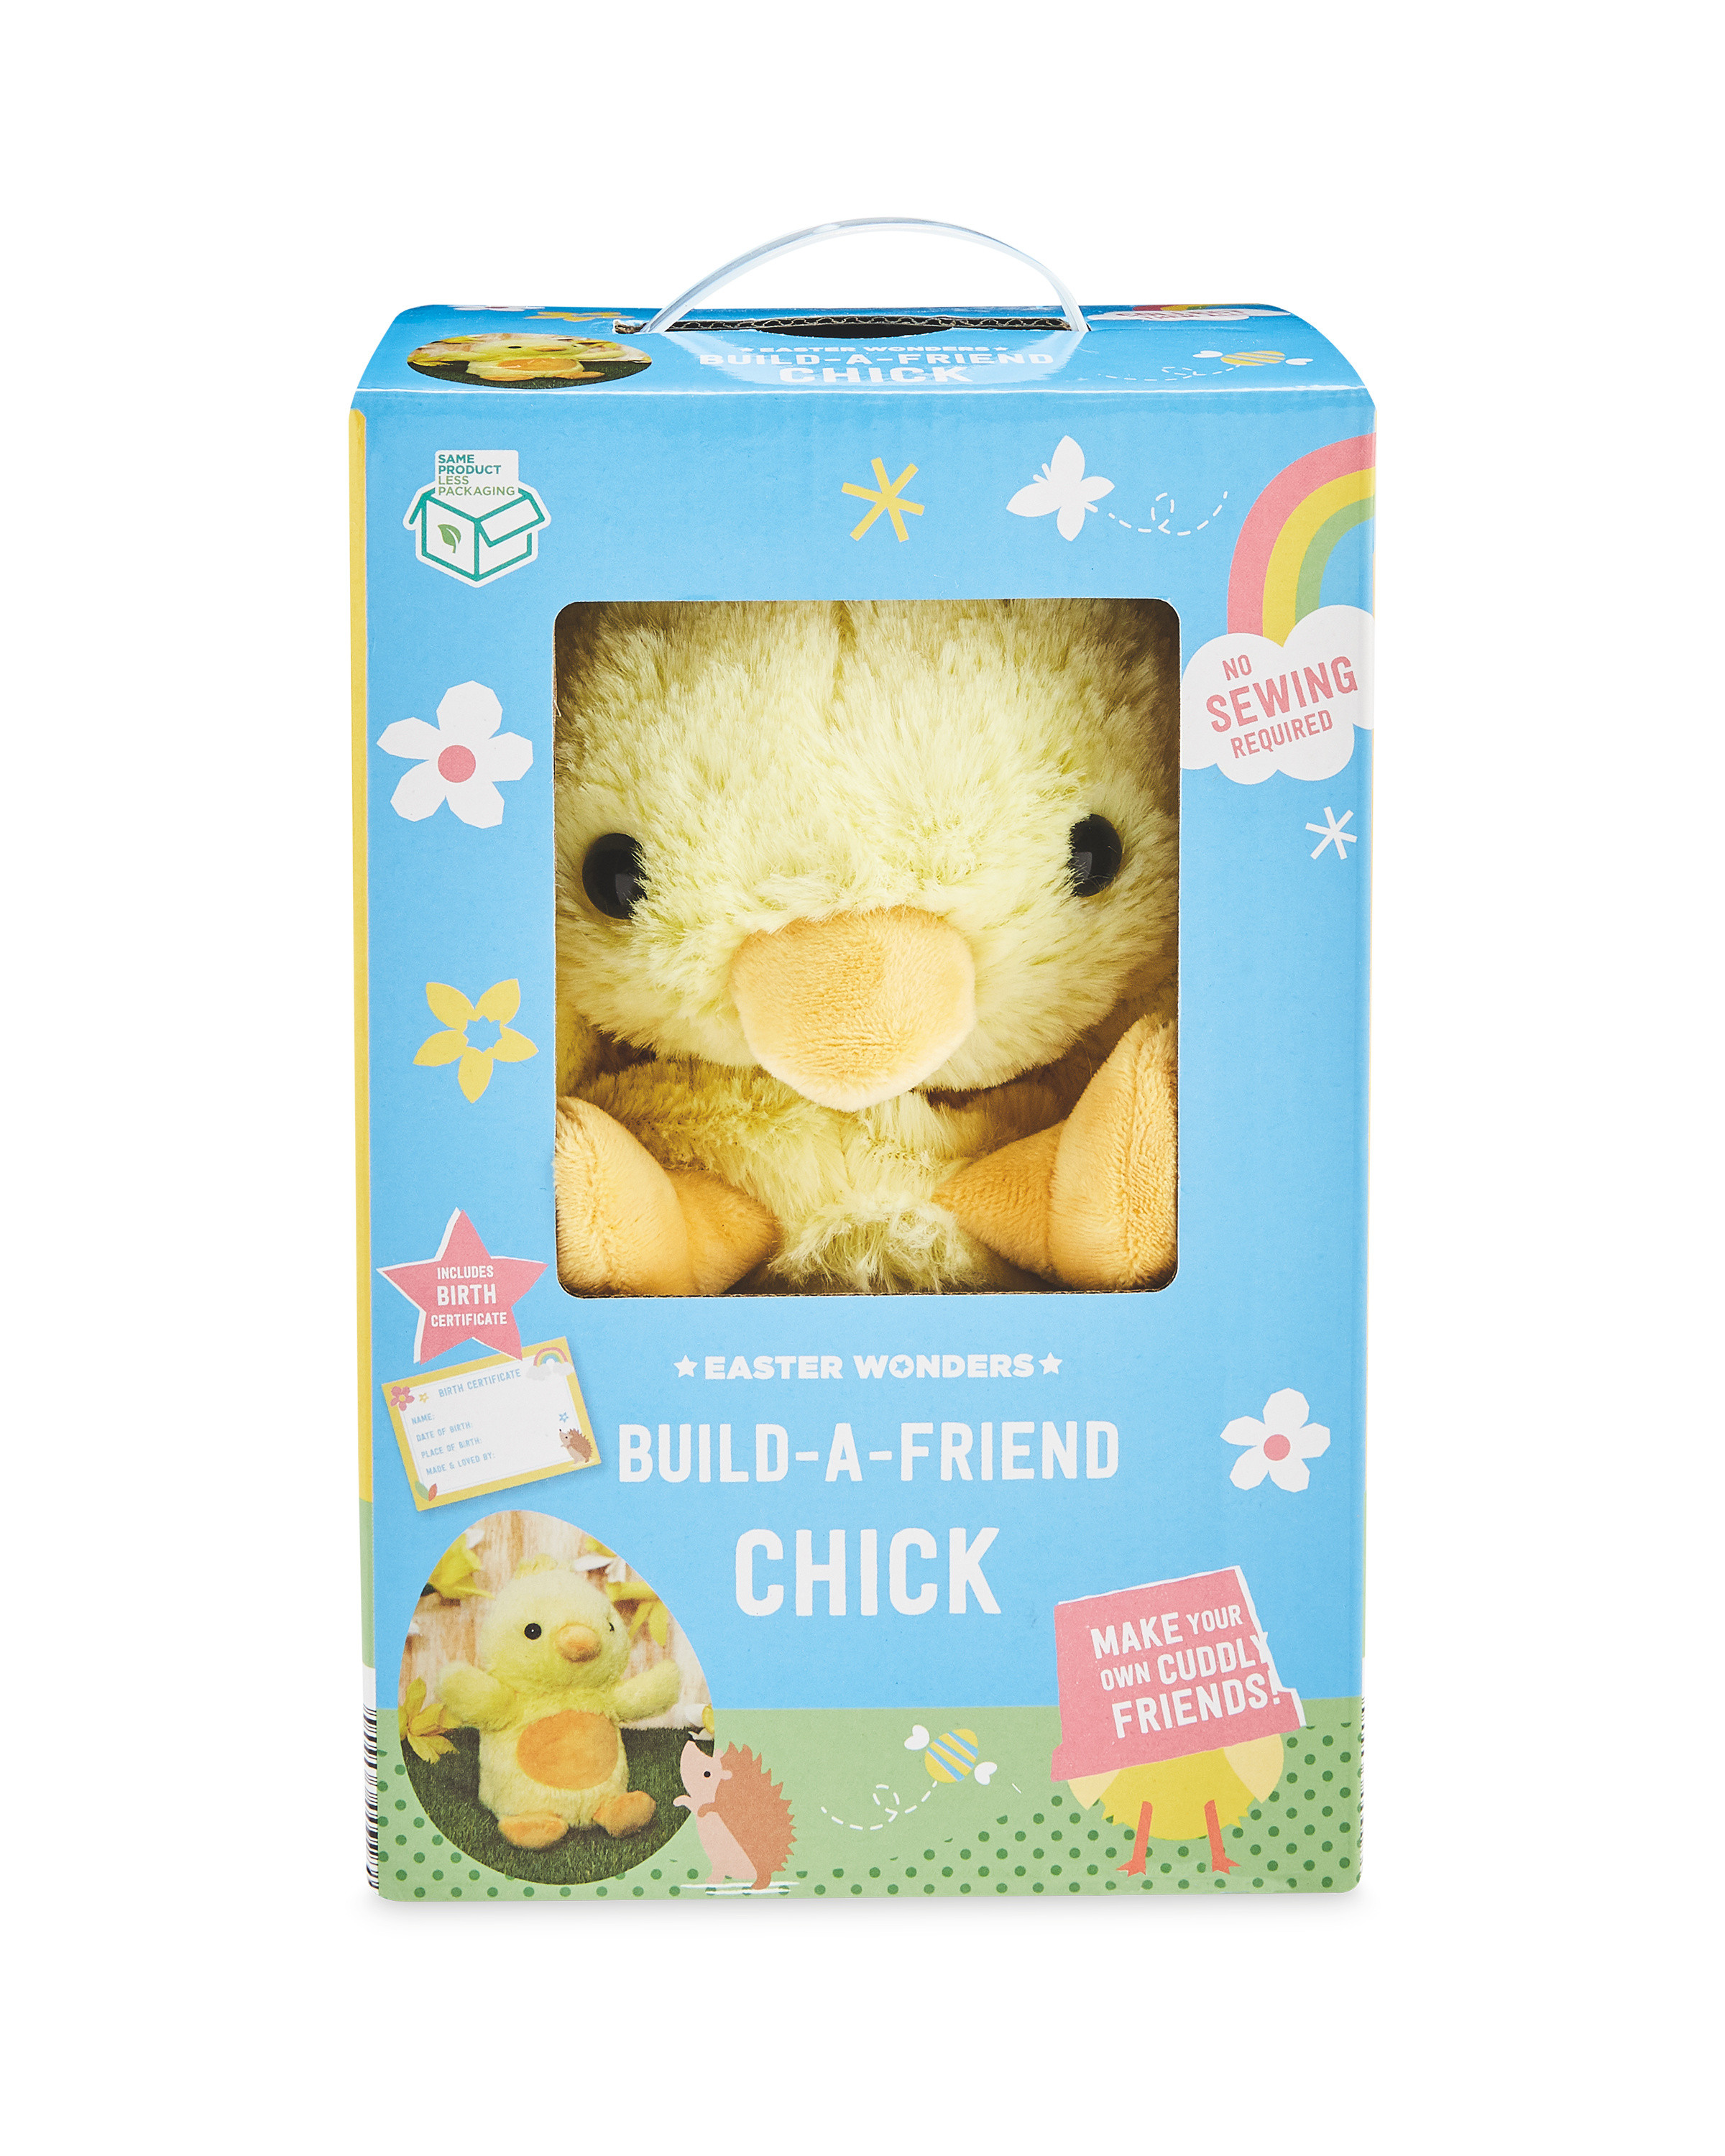 Build-A-Friend Easter Chick Kit